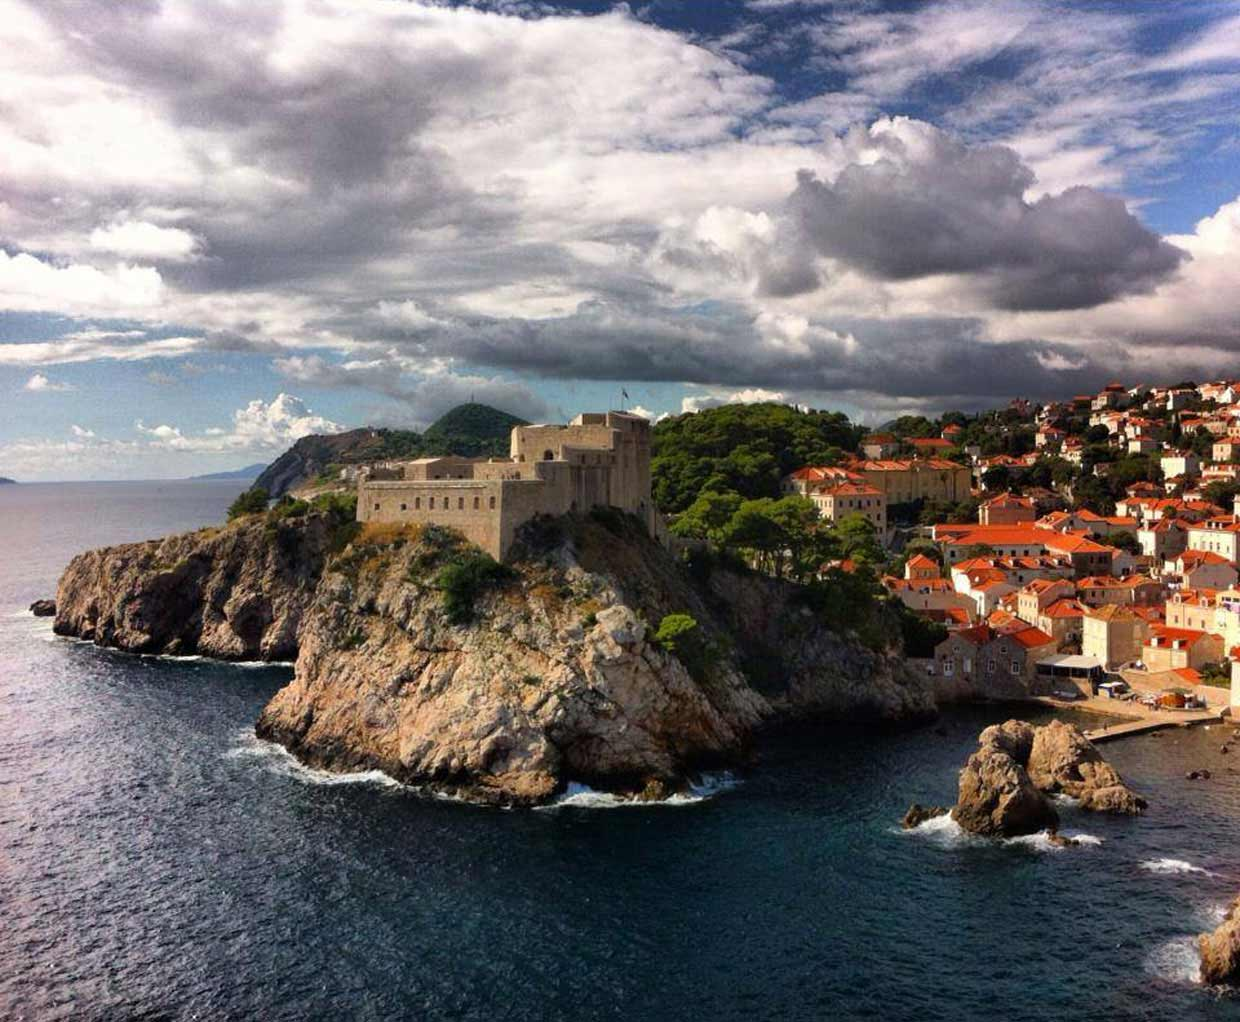 Dubrovnik's Old Town game of thrones